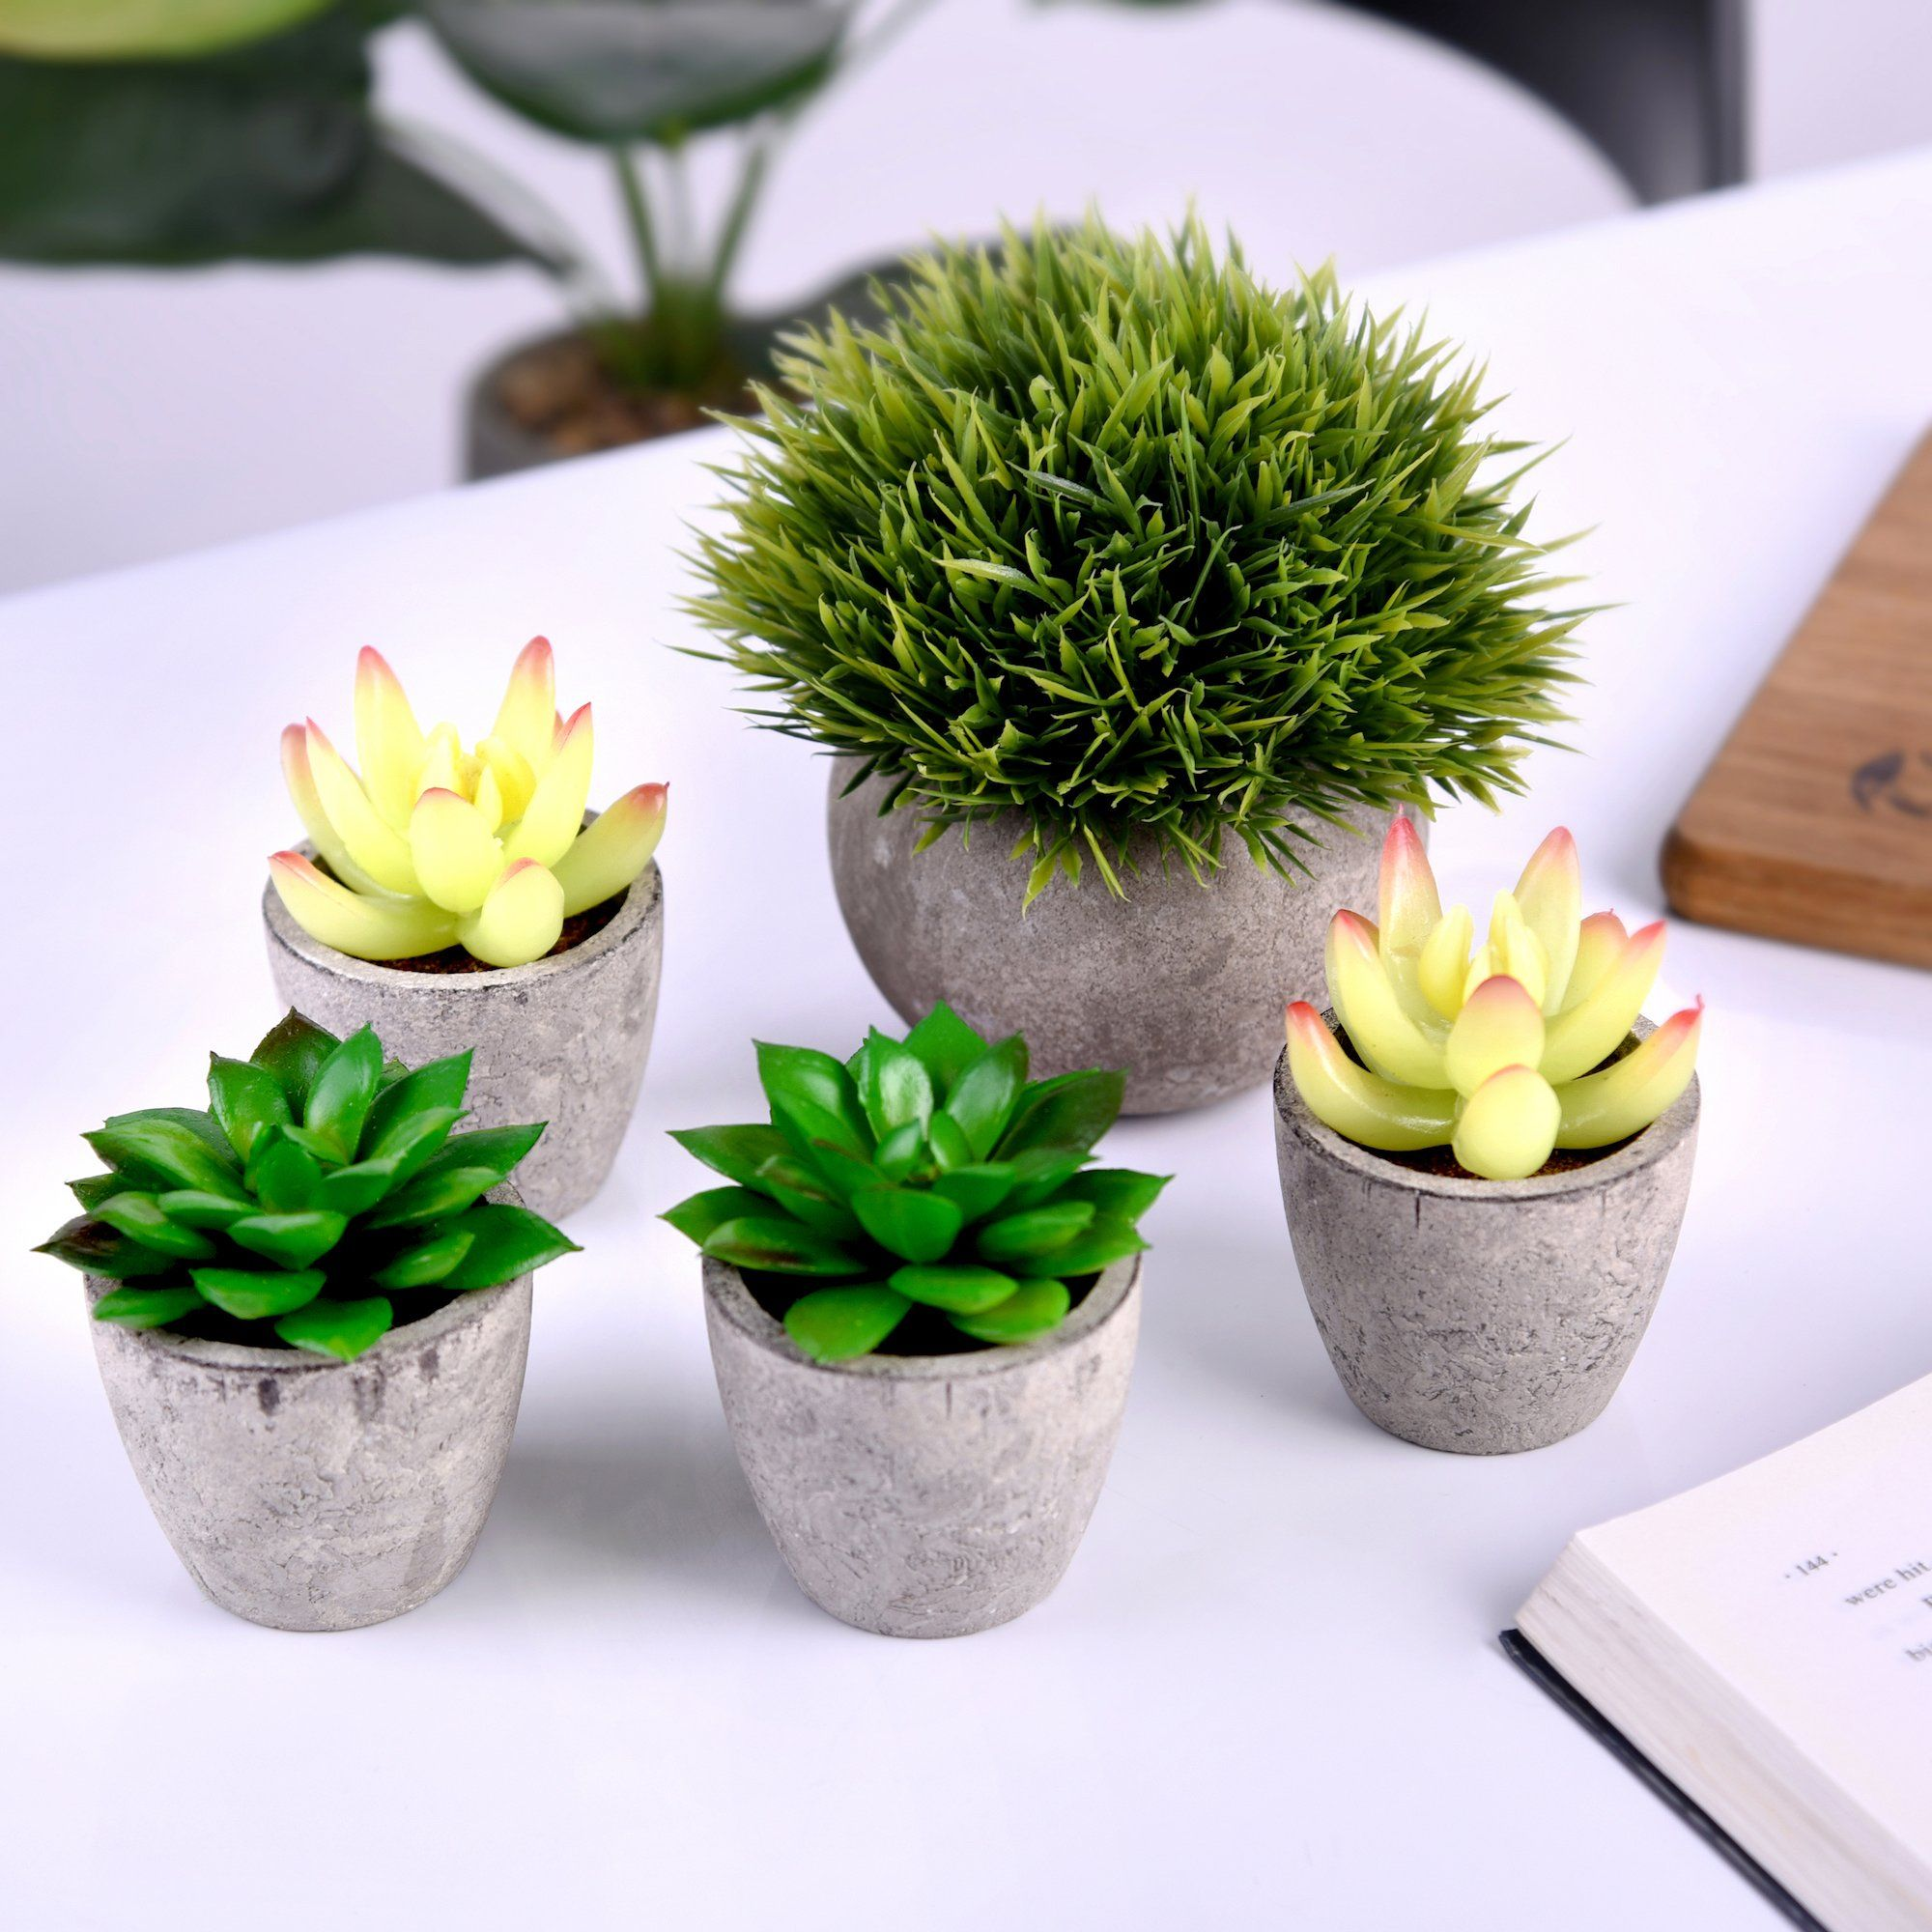 Artificial Succulent Plants Potted Fake Succulents Set Of 5 Home Bath Office Decor Gift Faux Potted Artificial Succulent Plants Fake Succulents Succulents